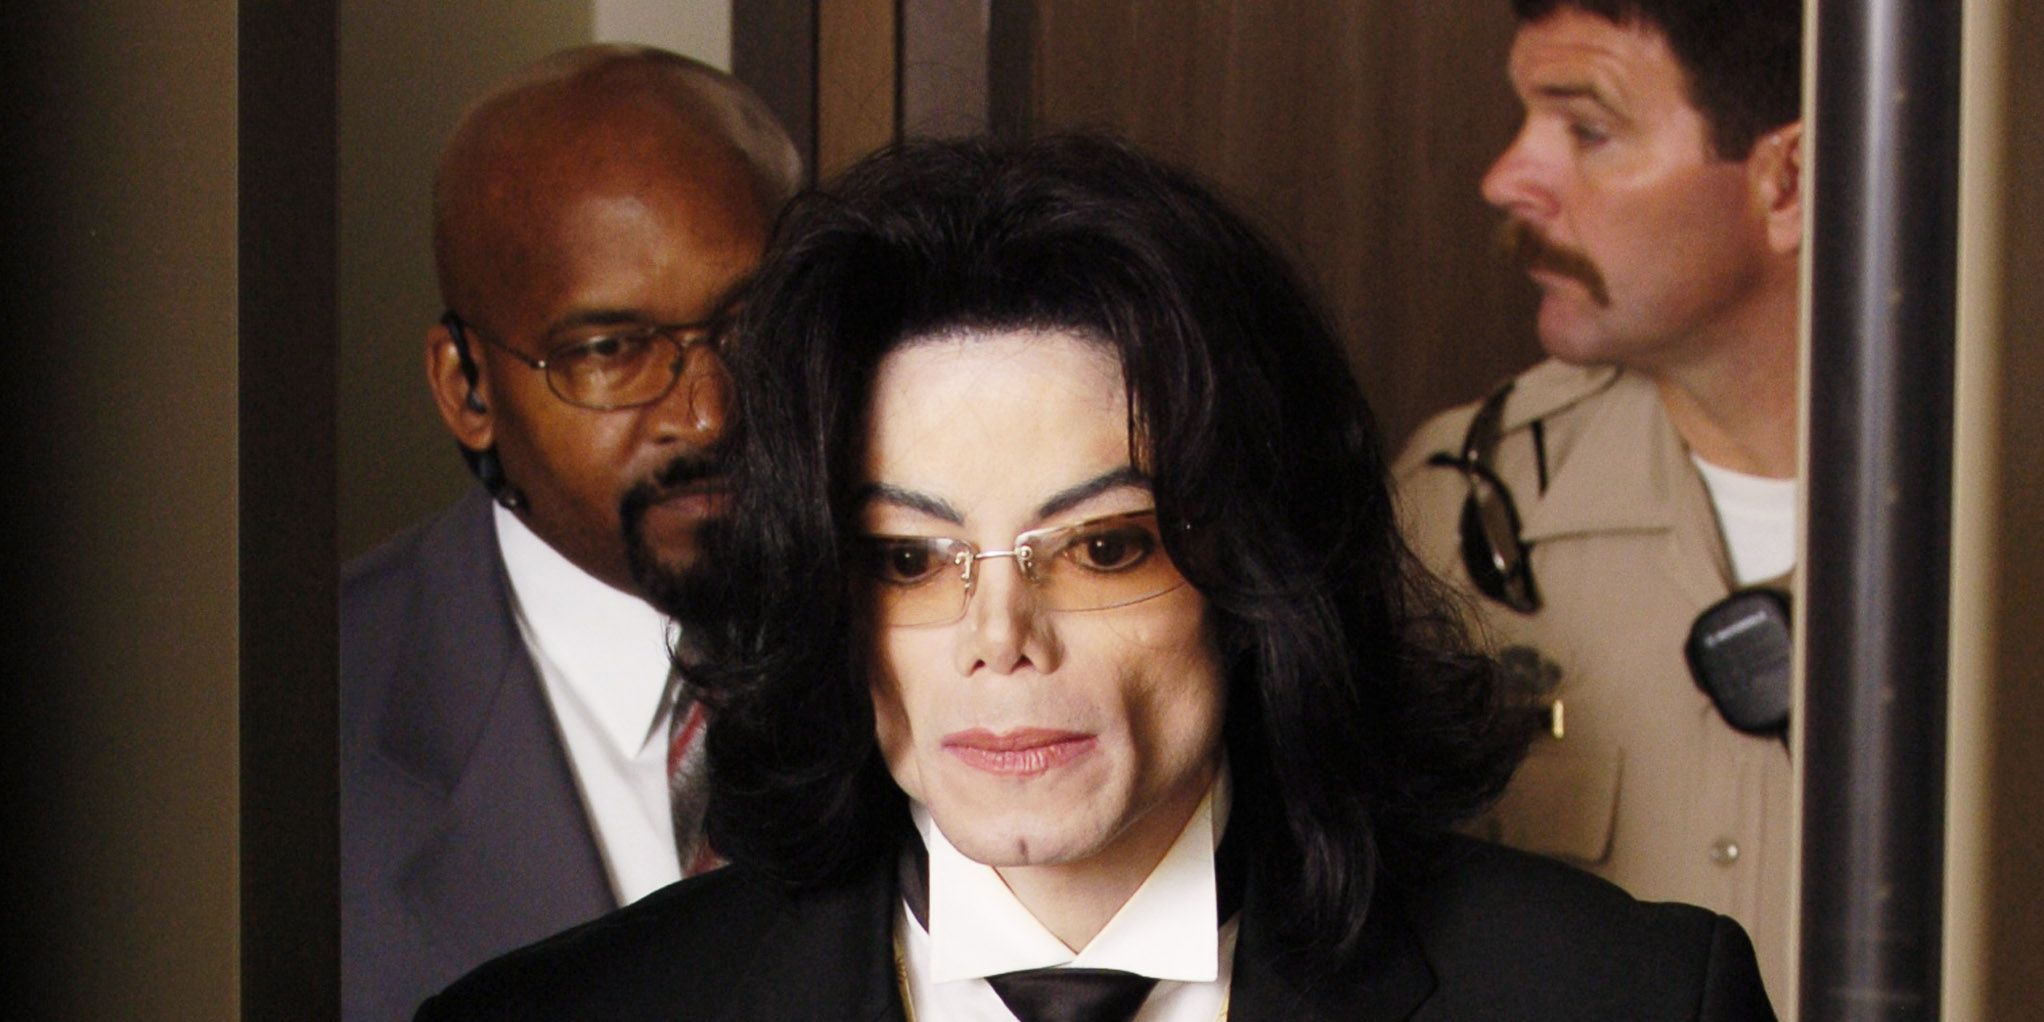 What actually happened in Michael Jackson's trial?